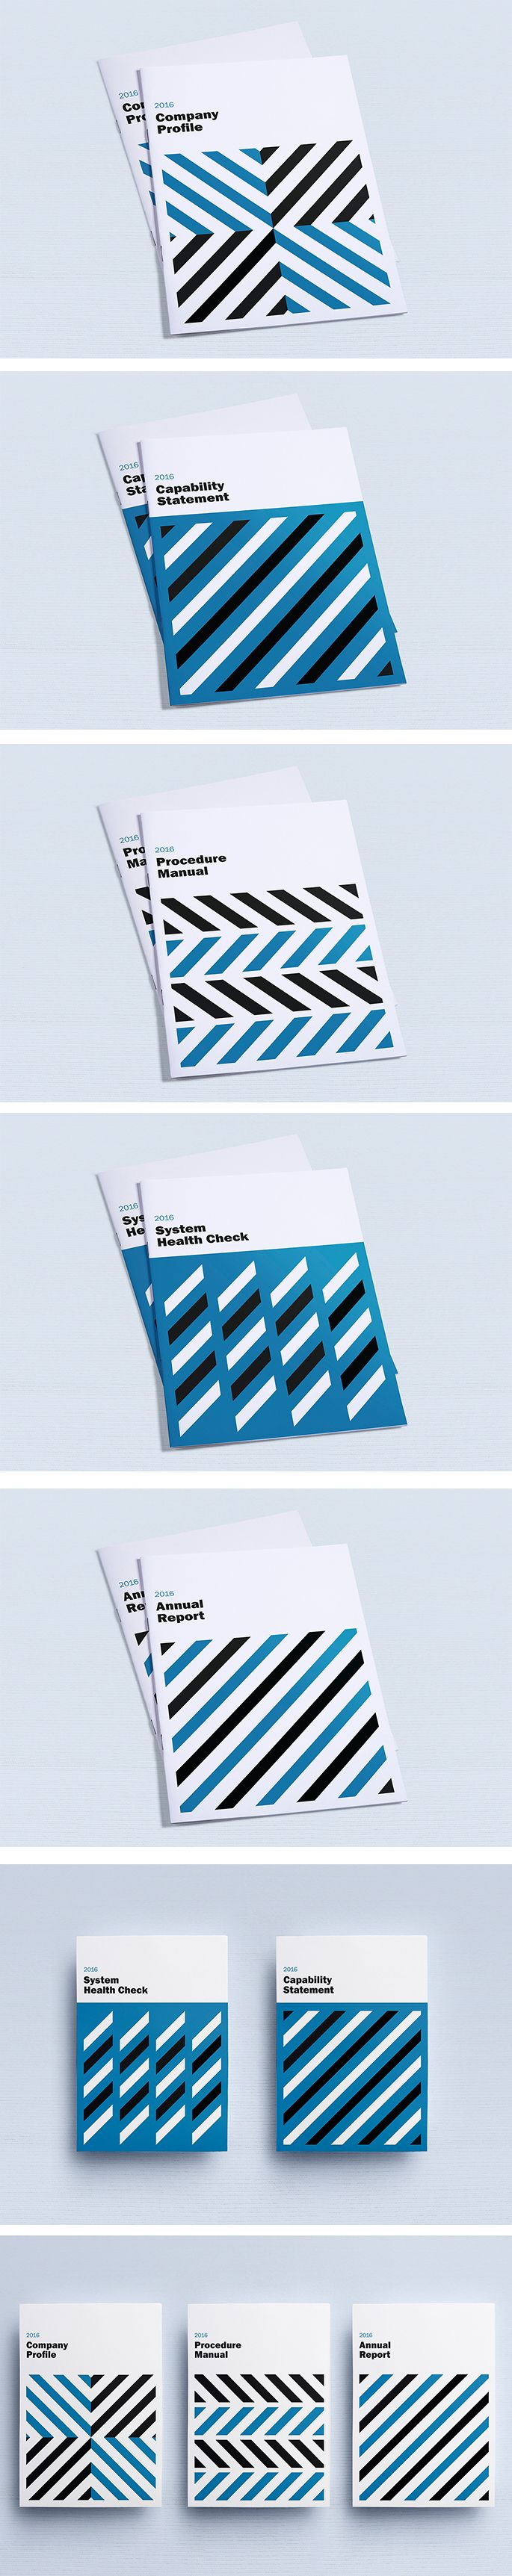 Cover design inspiration geometric minimalist layout for Minimalist design inspiration